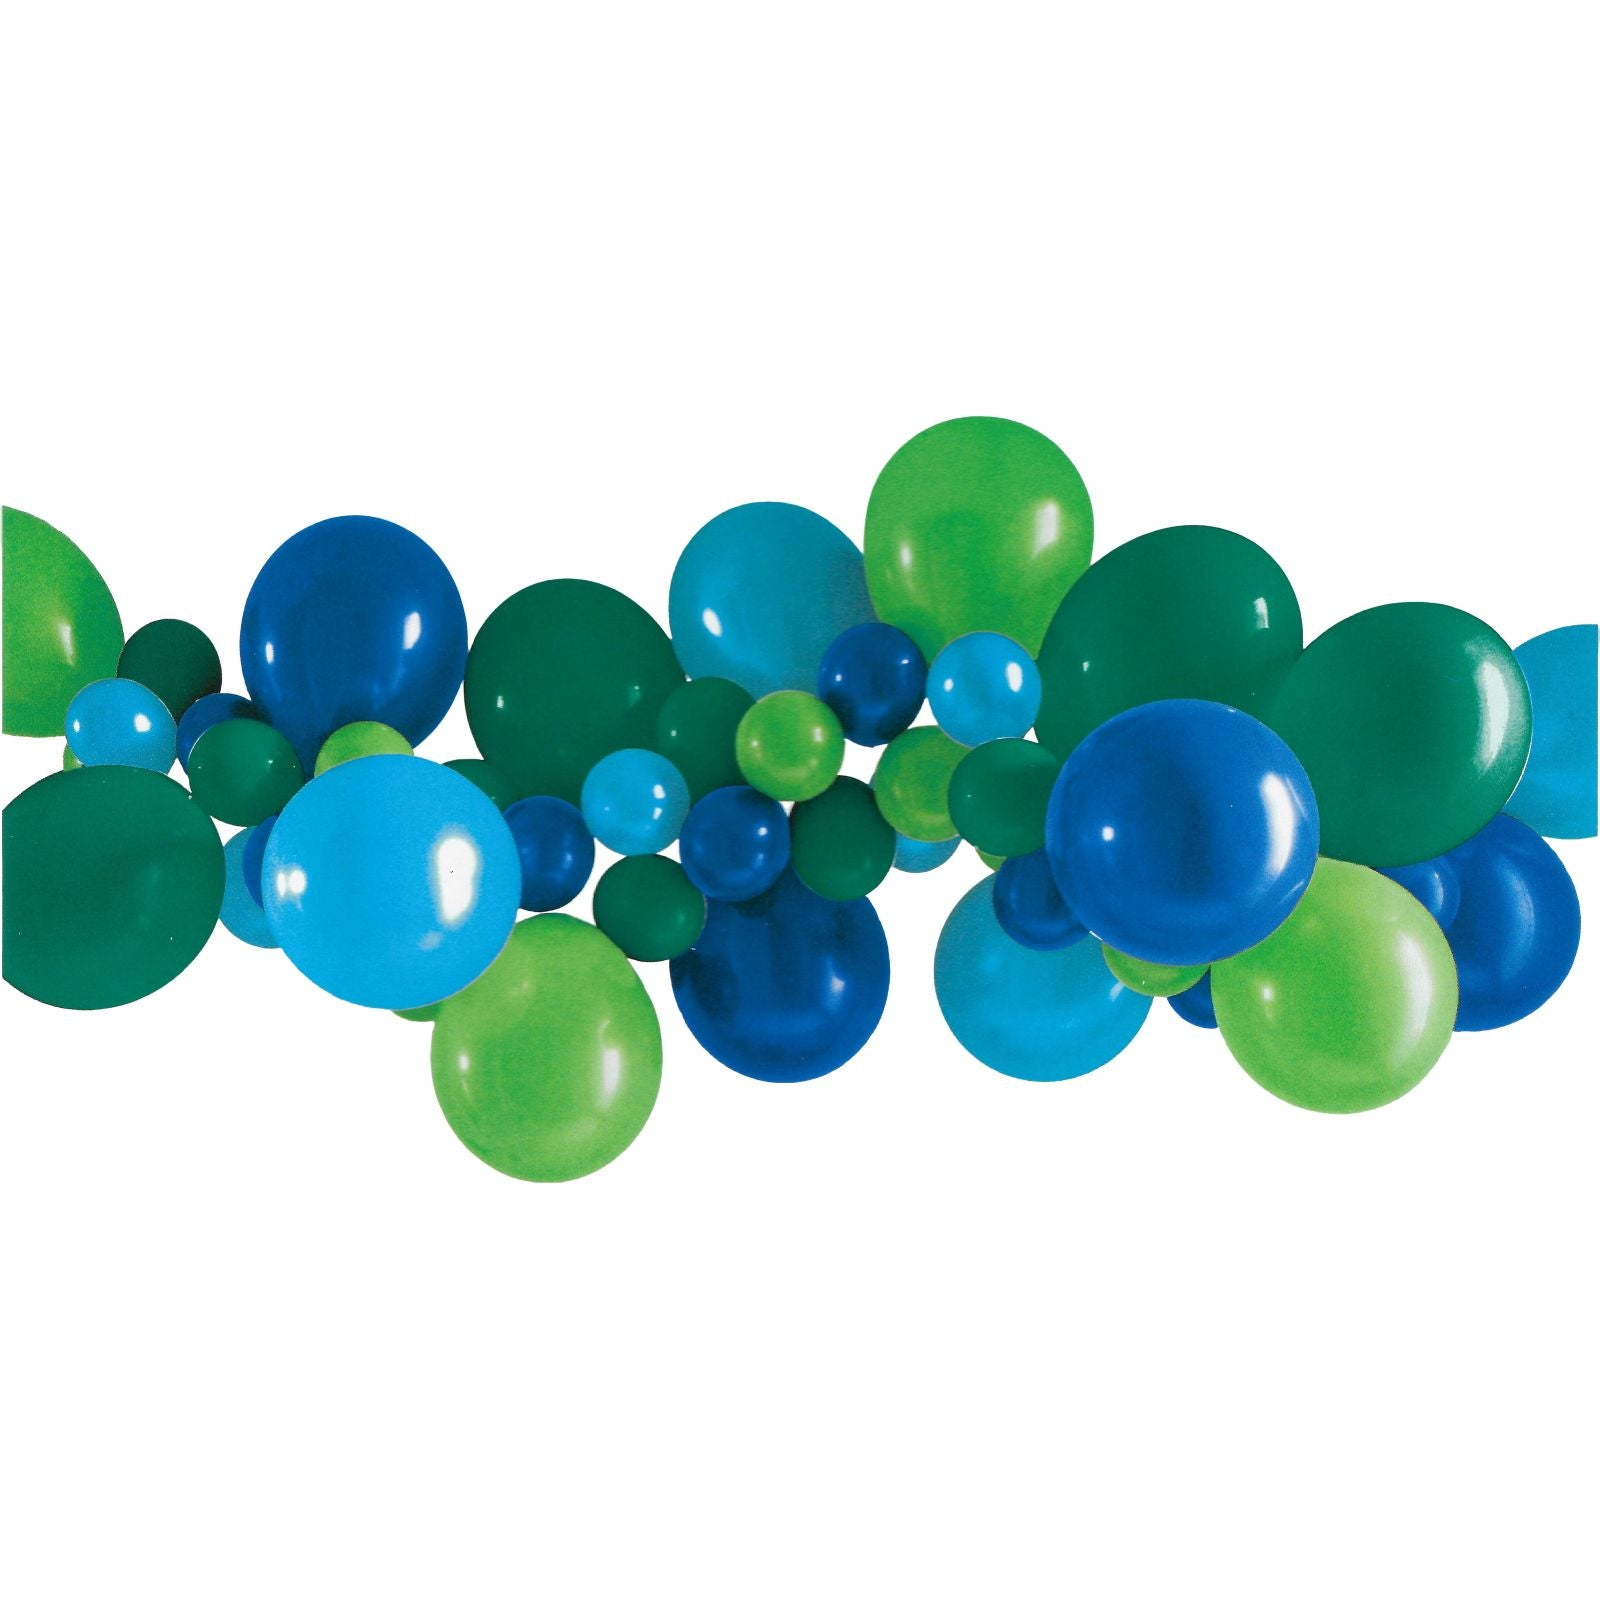 Blue Green Balloon Garland Kit Nz The Party Room